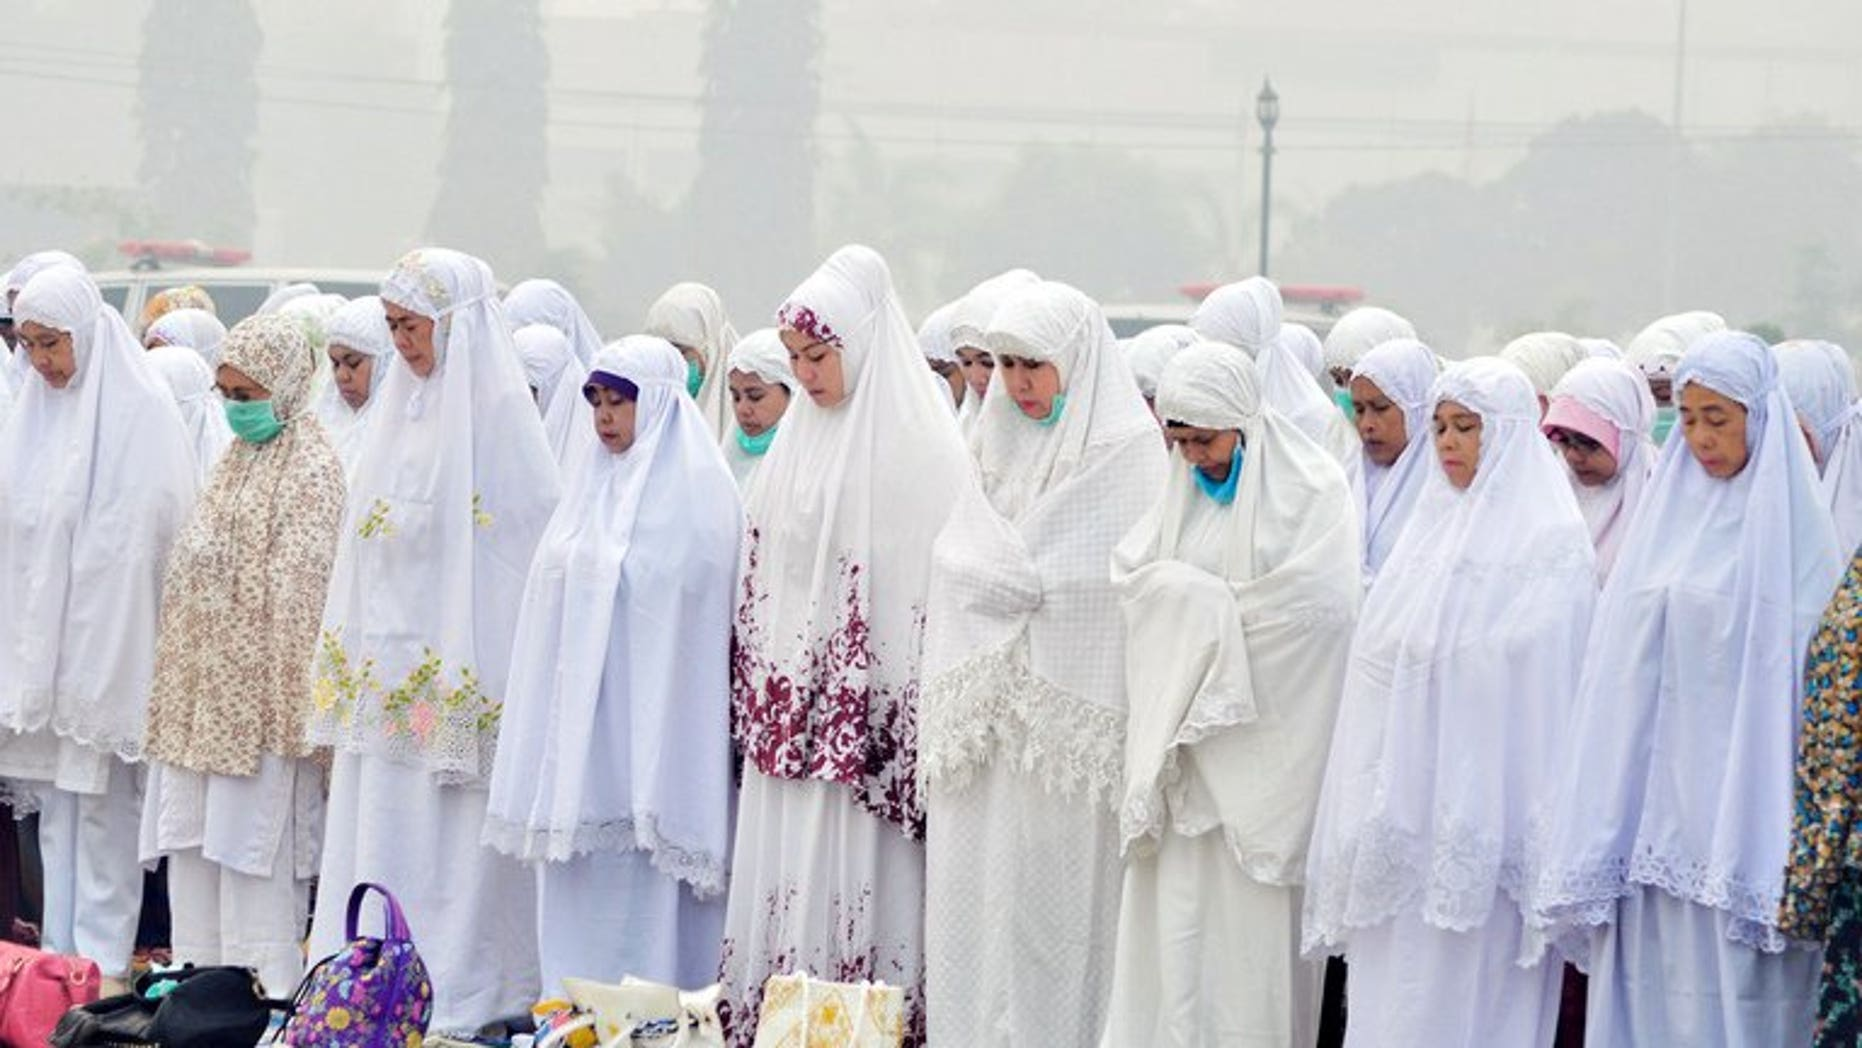 Indonesian Muslim women take part in mass prayers asking for rain at a square covered by thick haze in Dumai on June 25, 2013. Sales and distribution of alcohol could be banned in some parts of Indonesia after Muslim hardliners won a Supreme Court victory, an official said Friday.